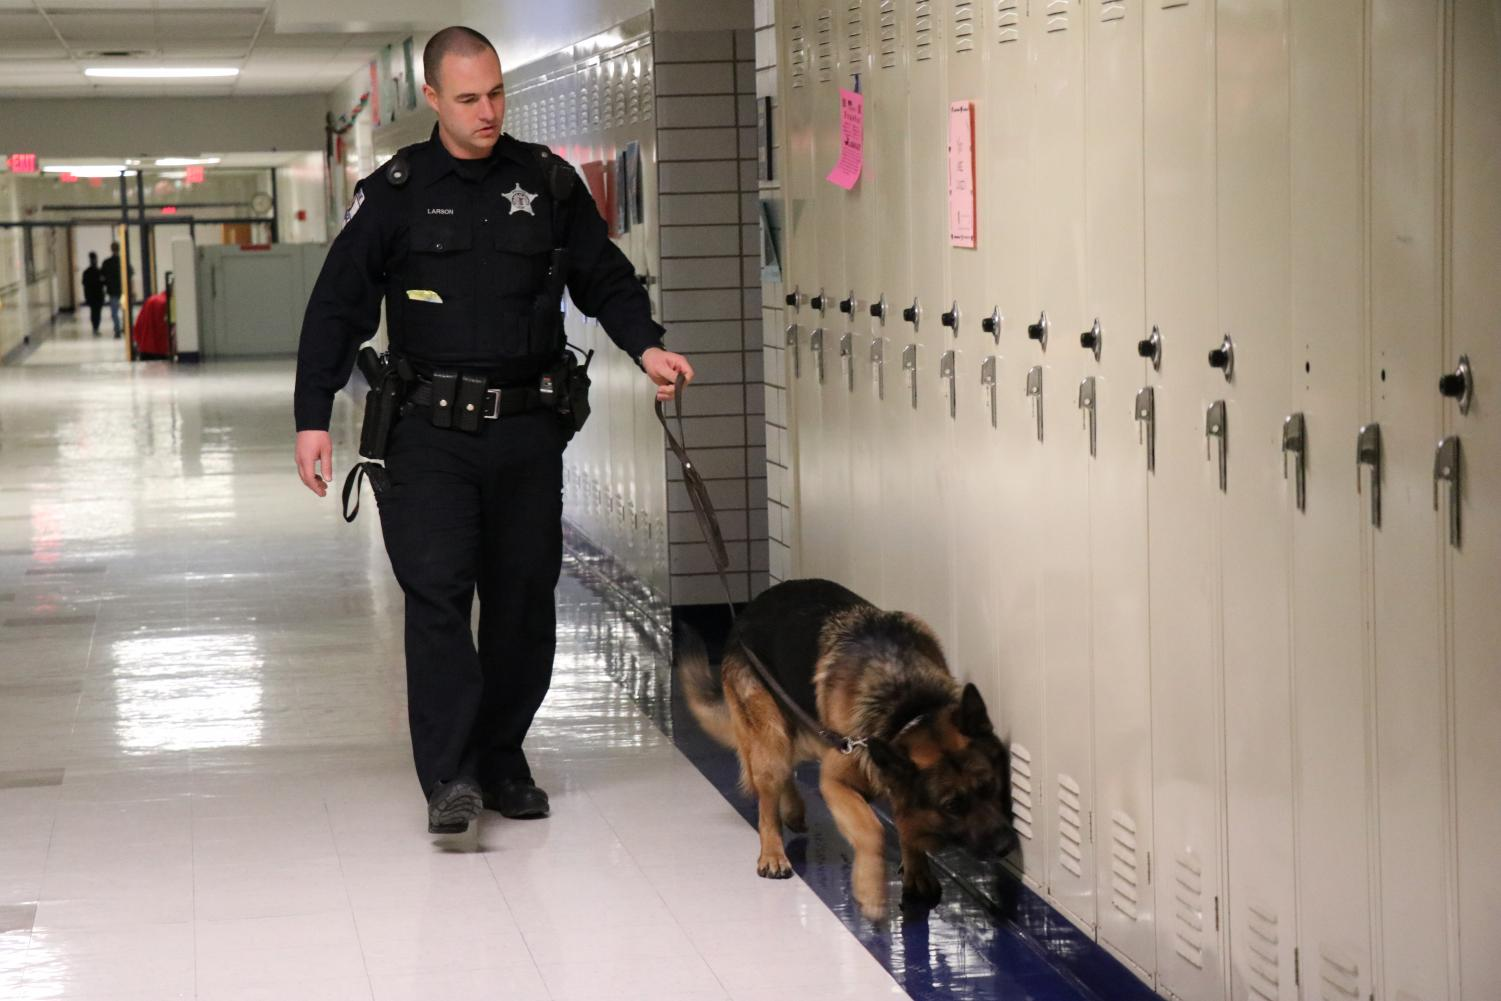 The Skokie Police Department conducts drug sweep on the first floor.